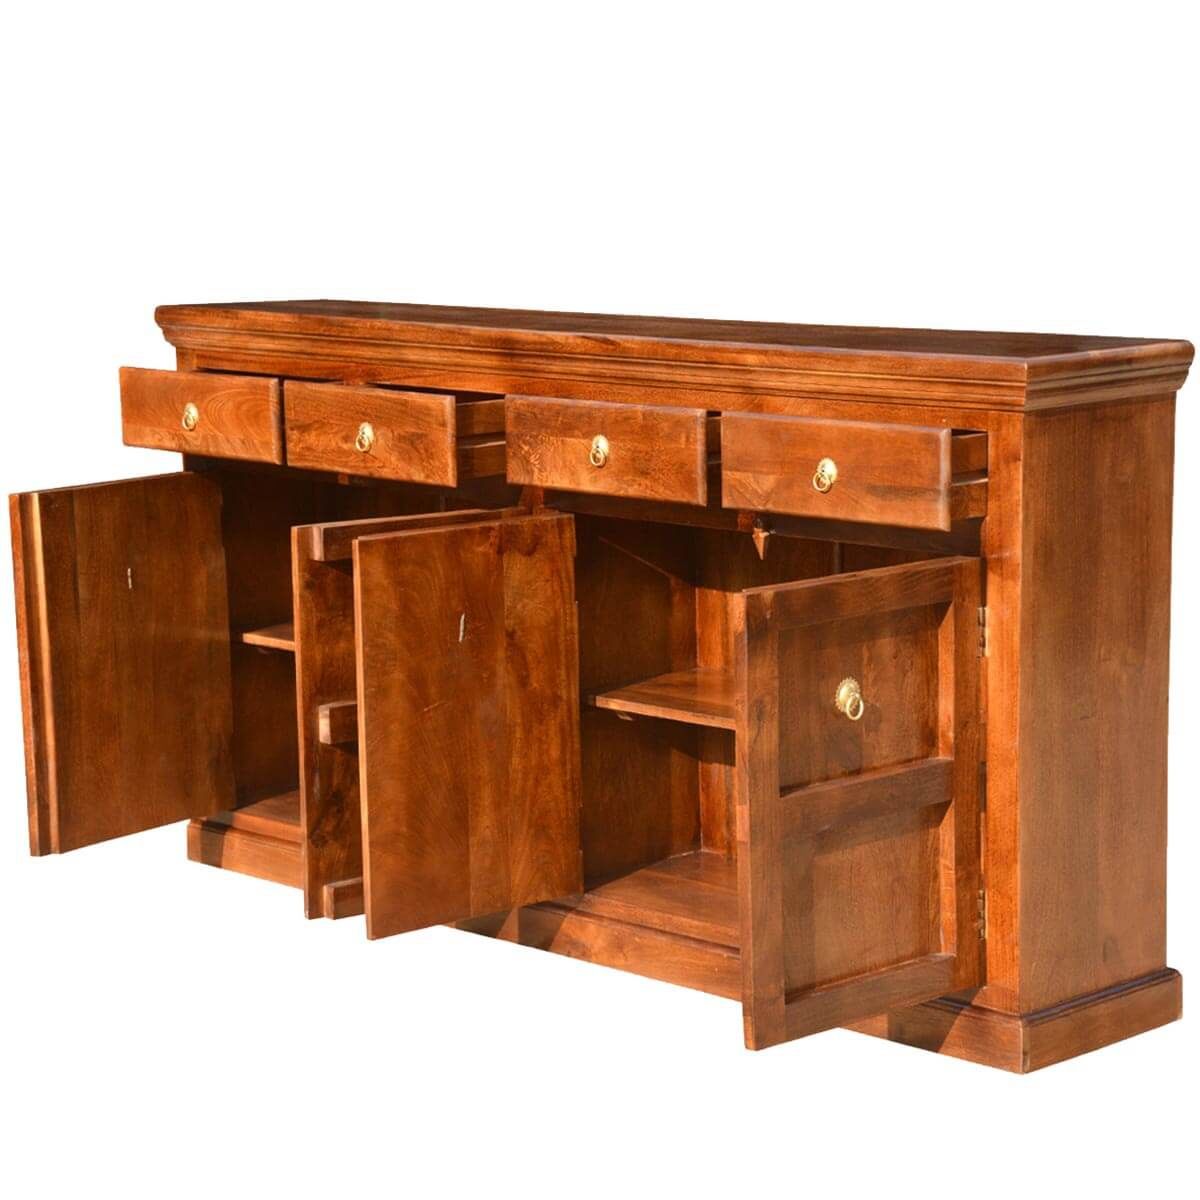 Shaker Traditional Solid Wood 4 Drawer Sideboard Cabinet